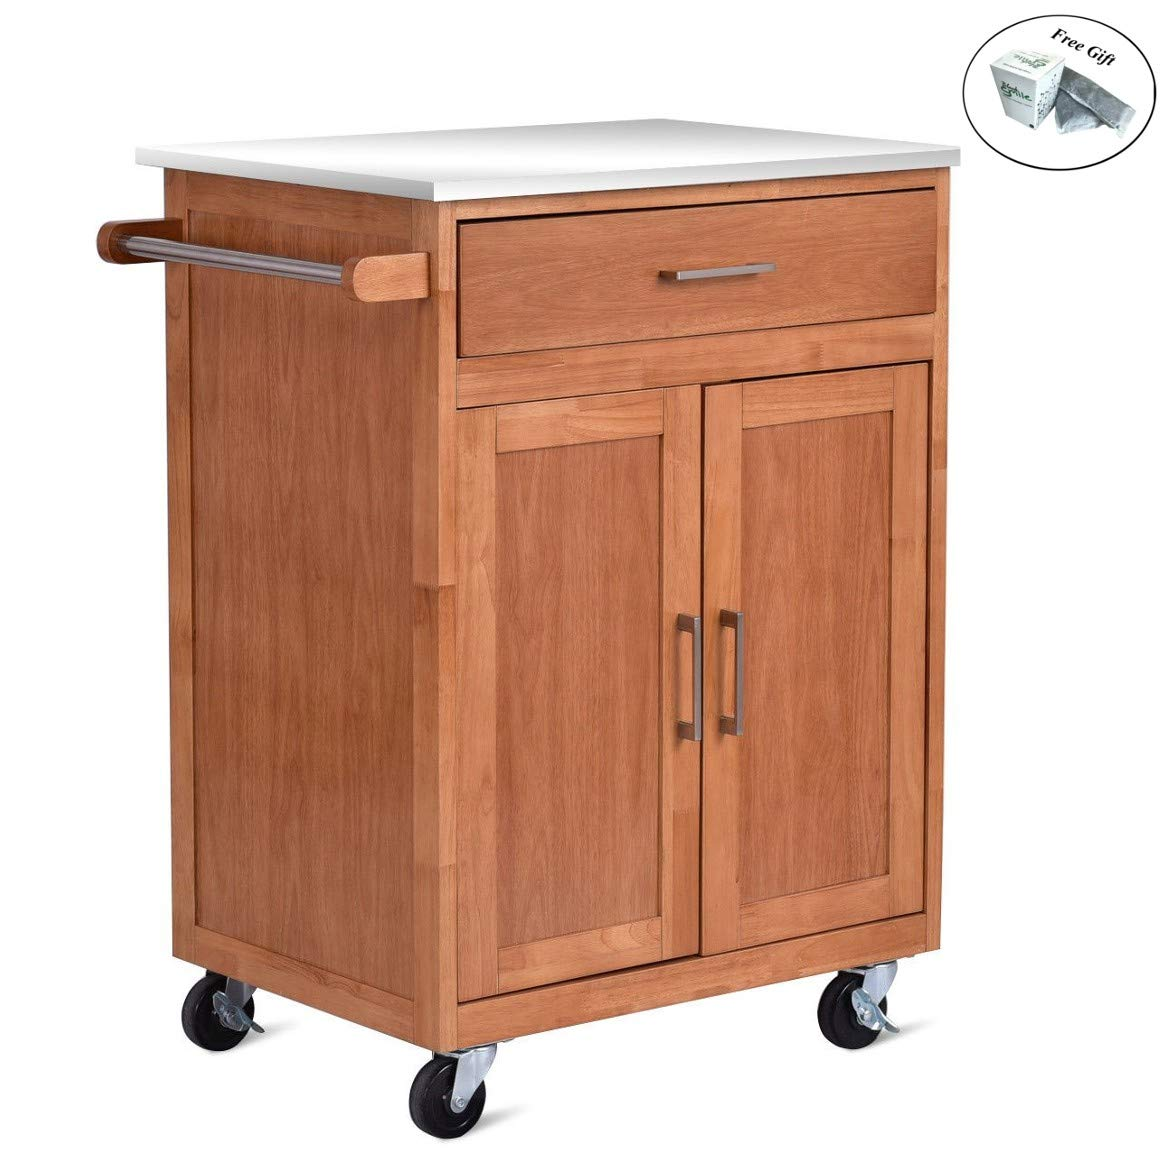 Amazon com cwy wooden kitchen rolling storage cabinet with stainless steel top only by eight24hours kitchen islands carts